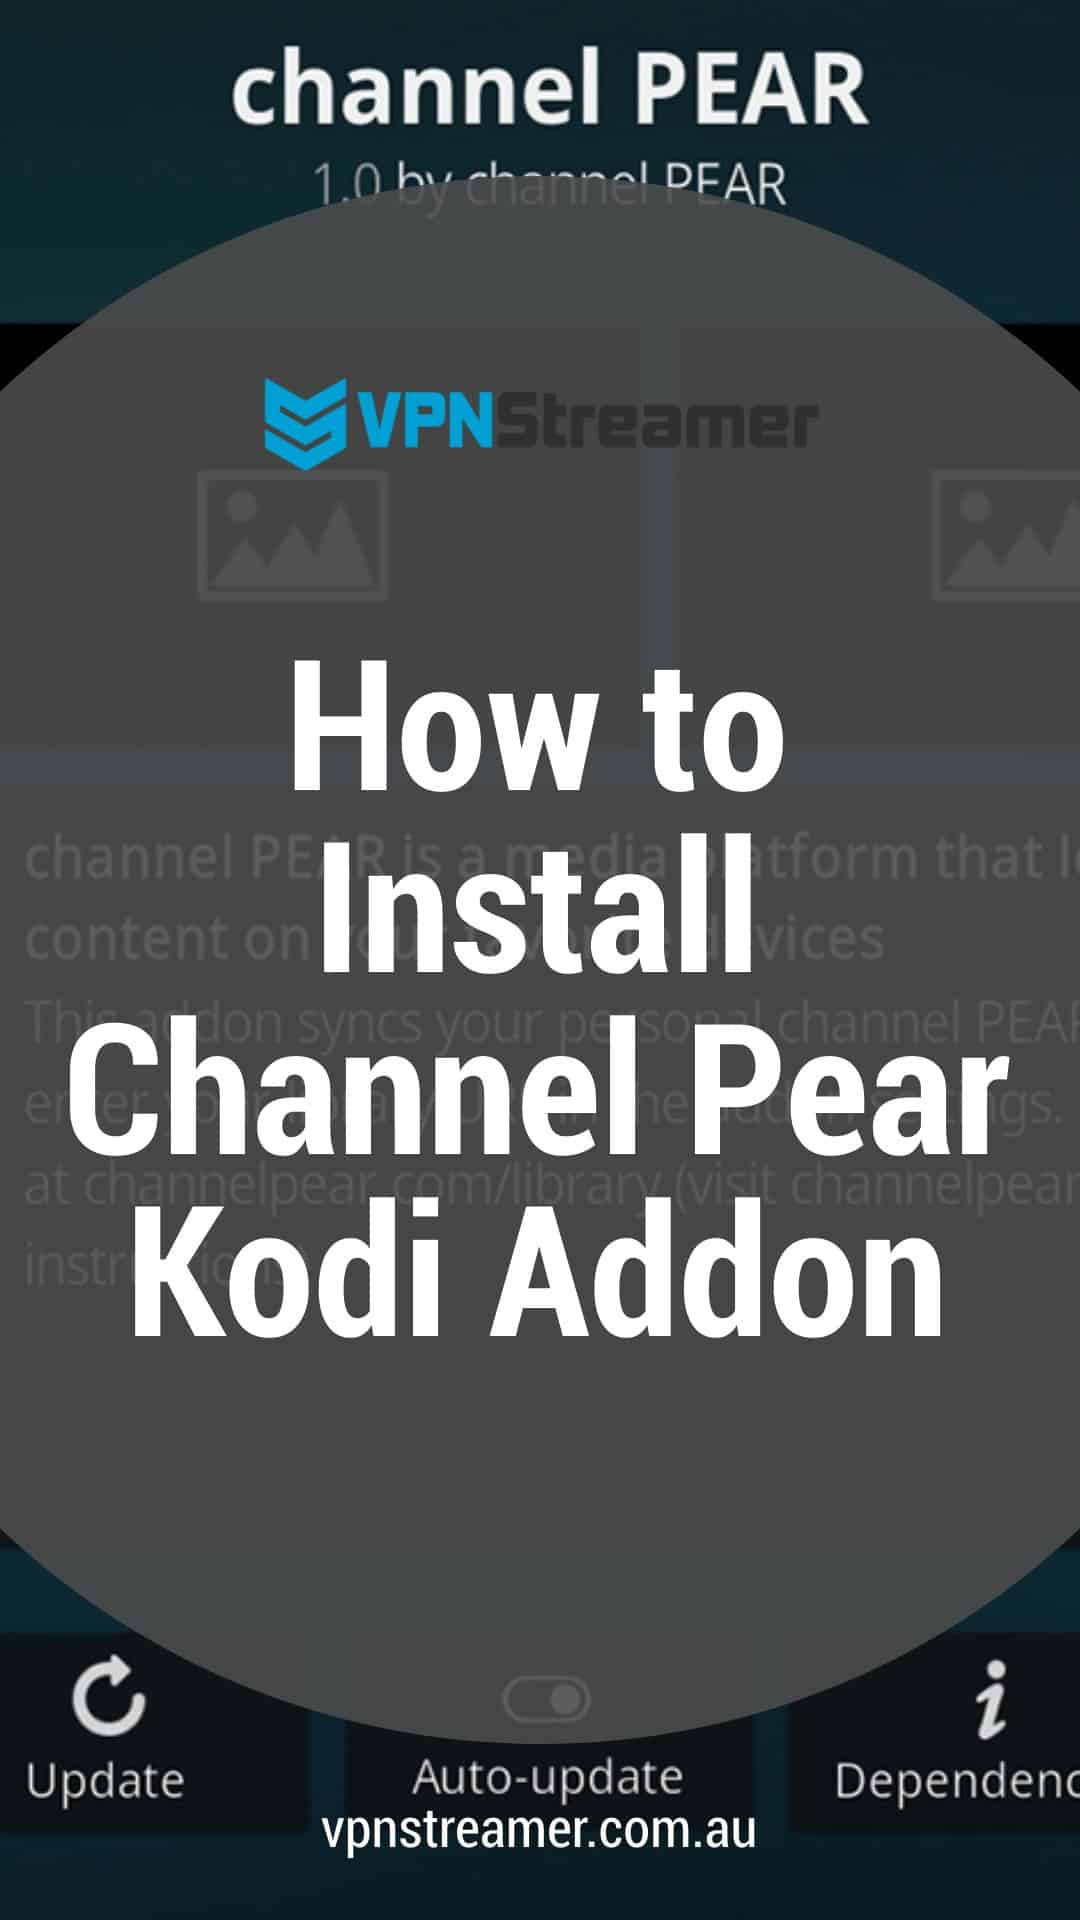 How to Install Channel Pear Kodi Addon